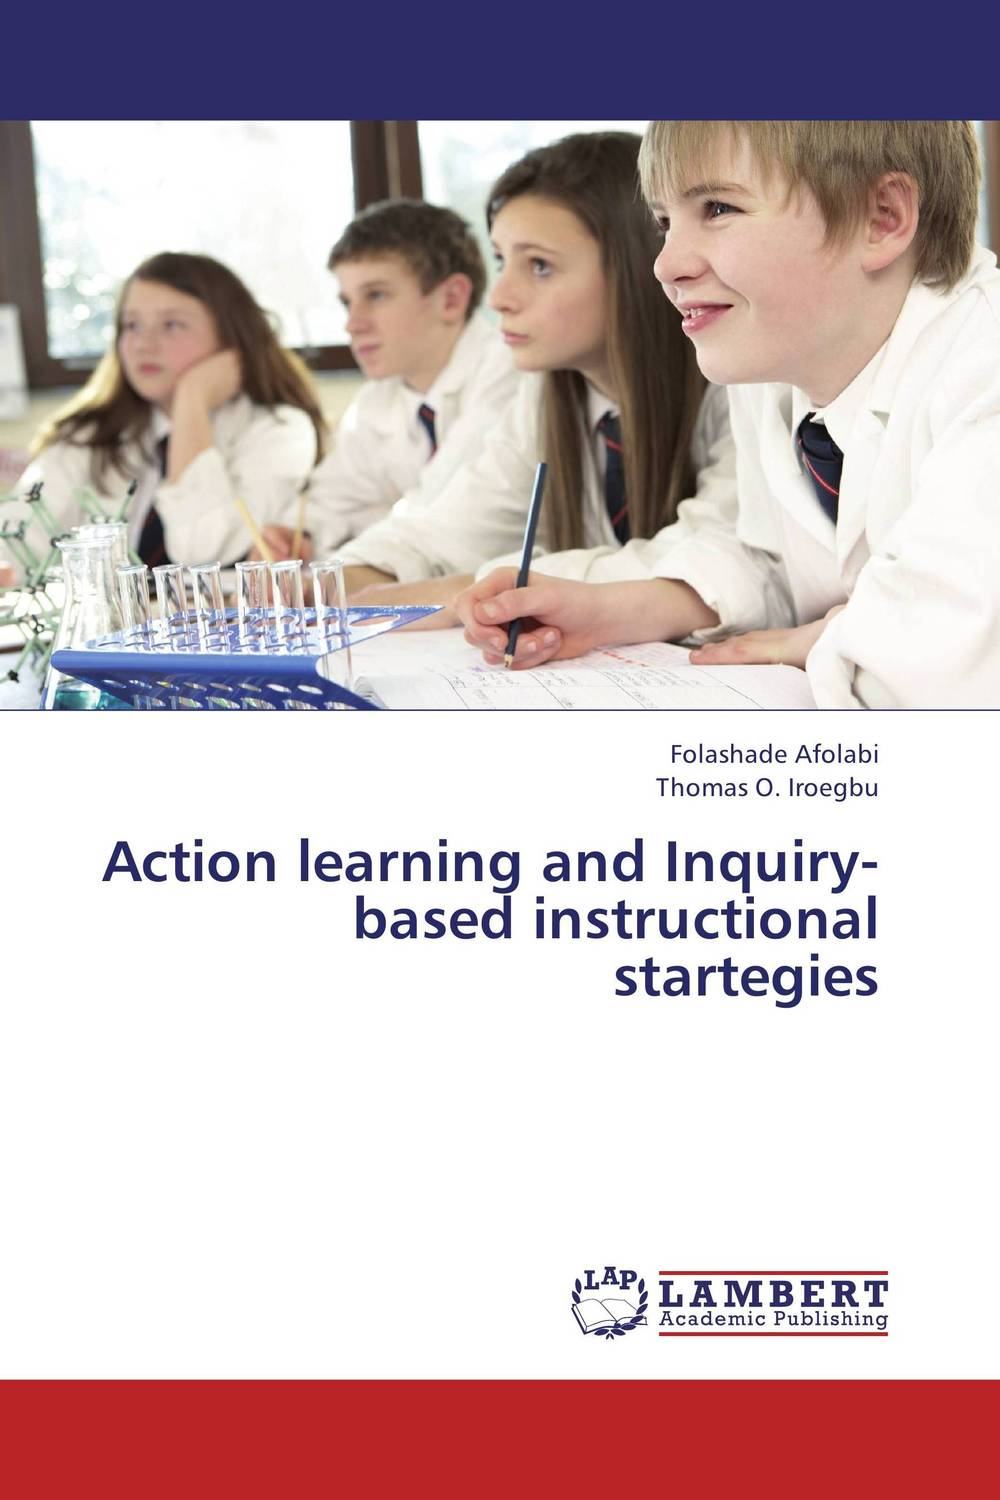 Action learning and Inquiry-based instructional  startegies web based learning in lis